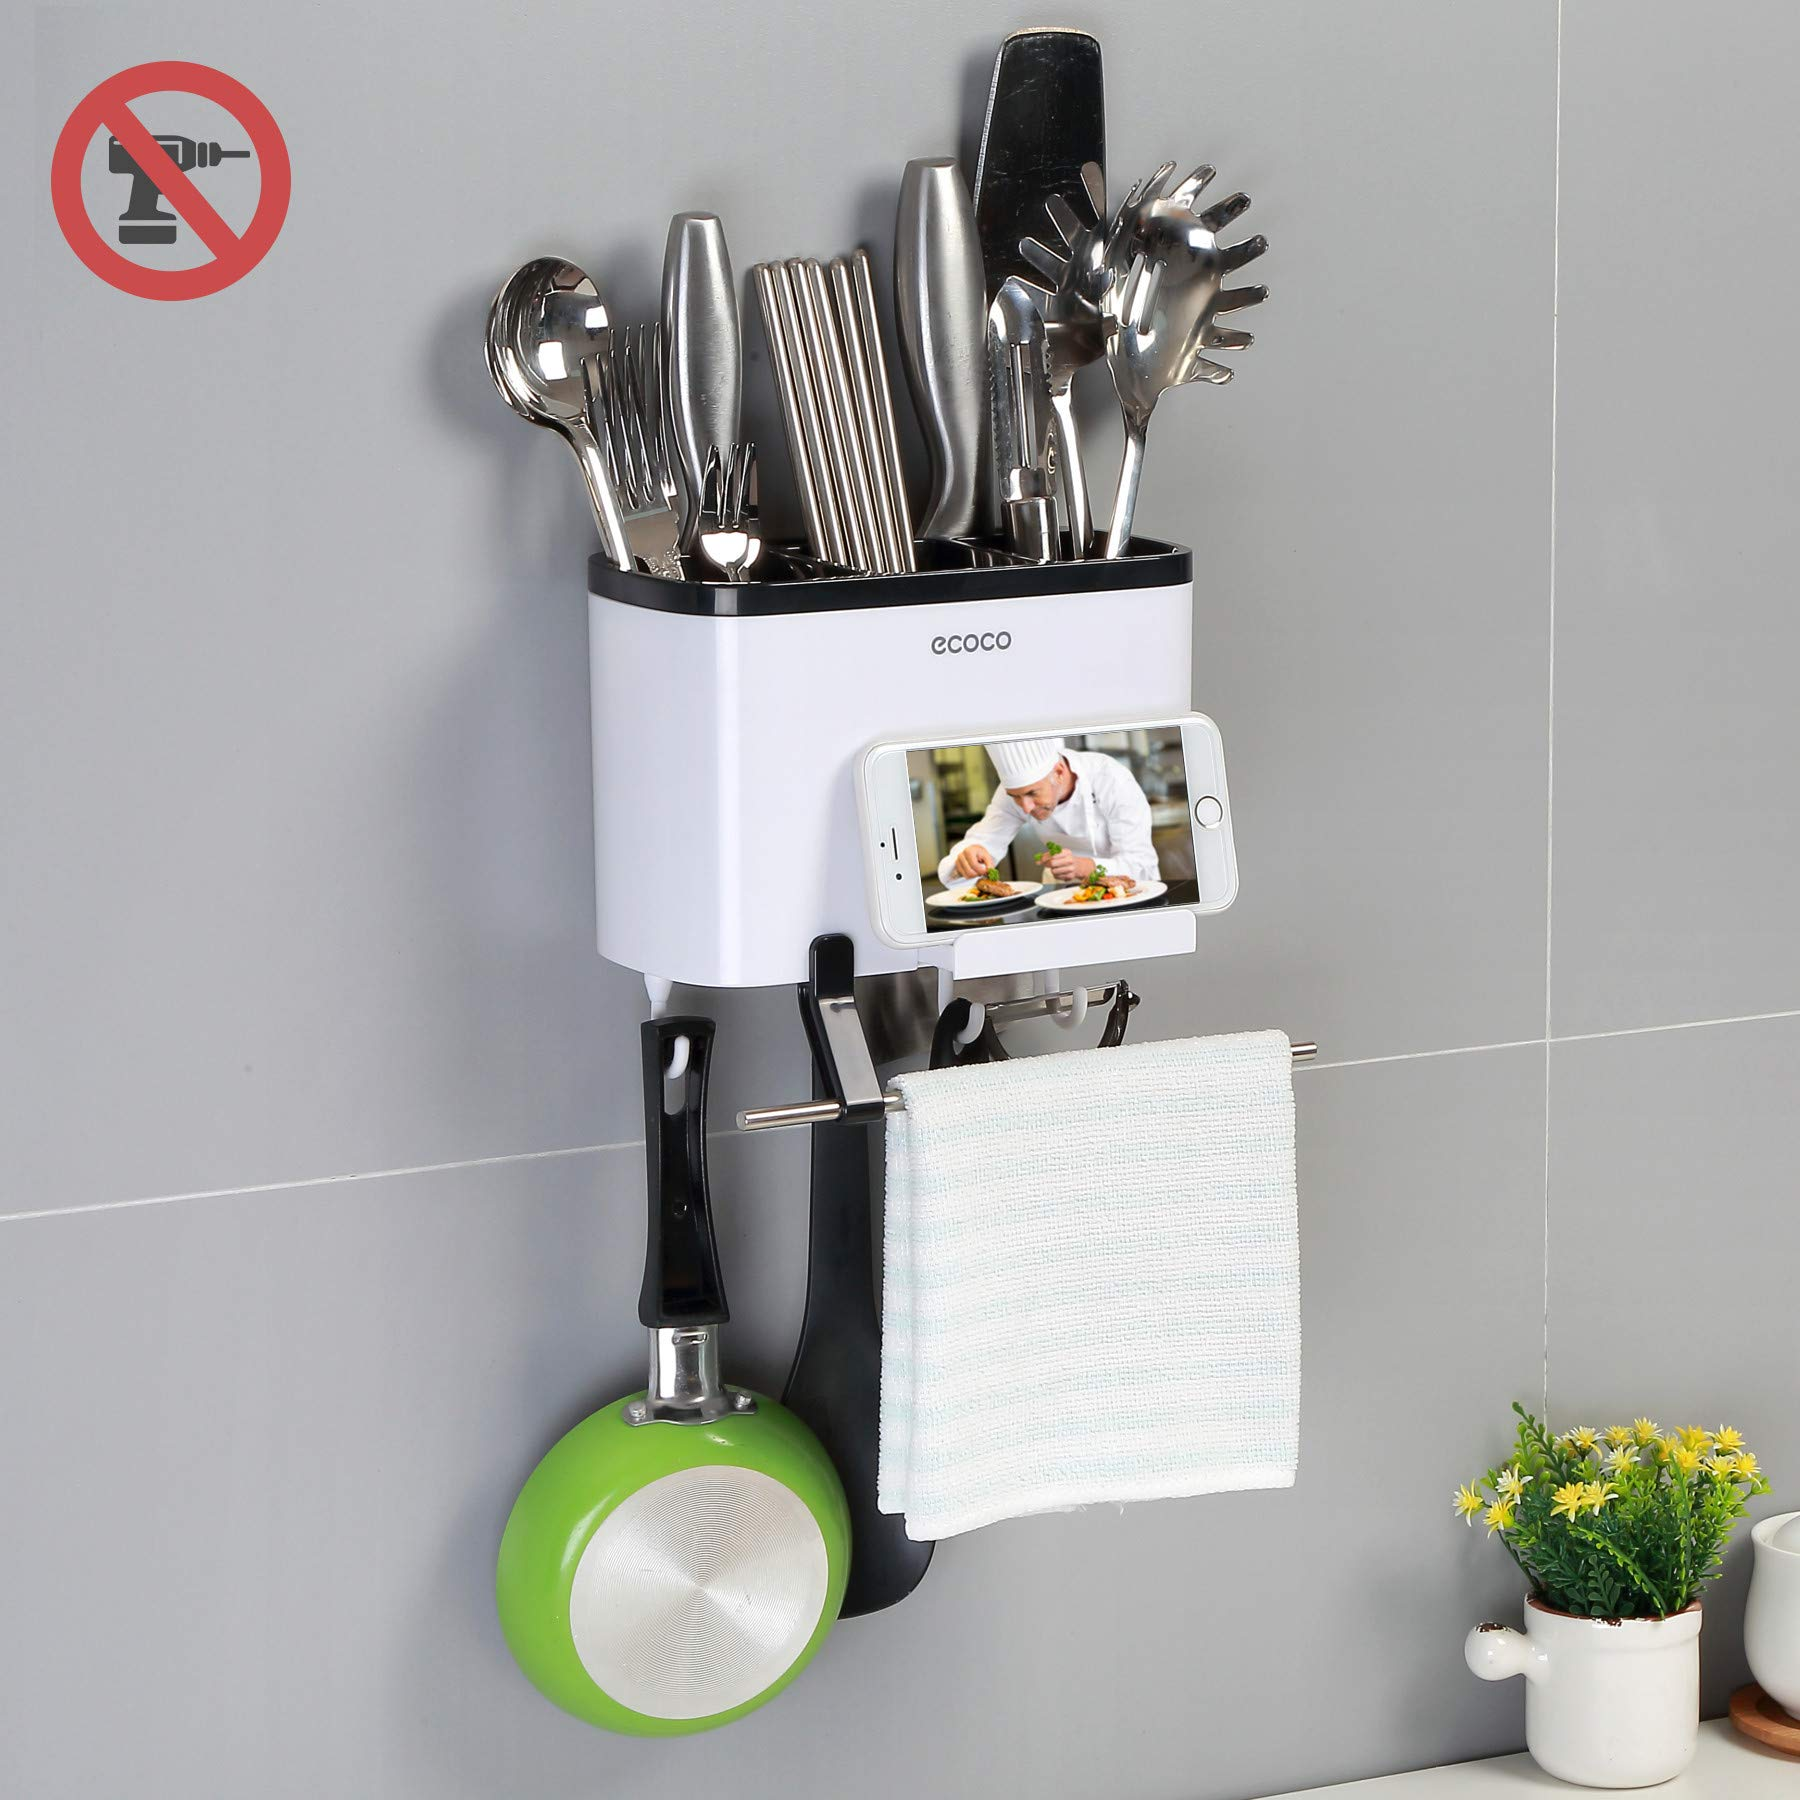 Utensils Holder Caddy, Strong Self Adhesive Wall Mounted Kitchen Utensil Holder & Utensil Organizer with Stainless Steel Towel Bar & Removable Hooks - Phone Holder, Drain Holes